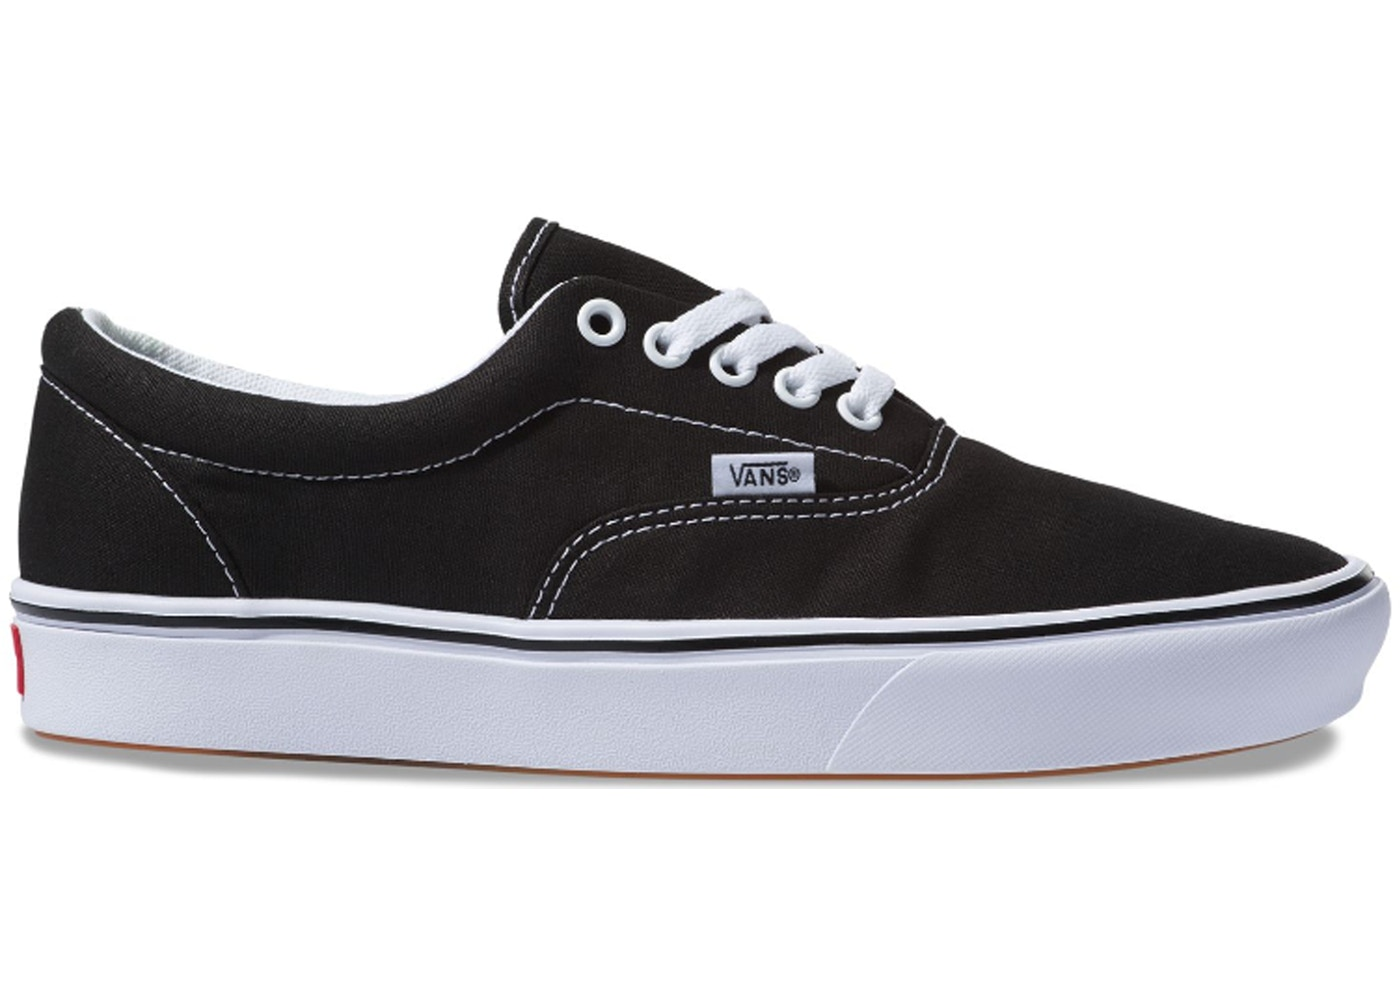 Vans Comfycush Era Black True White